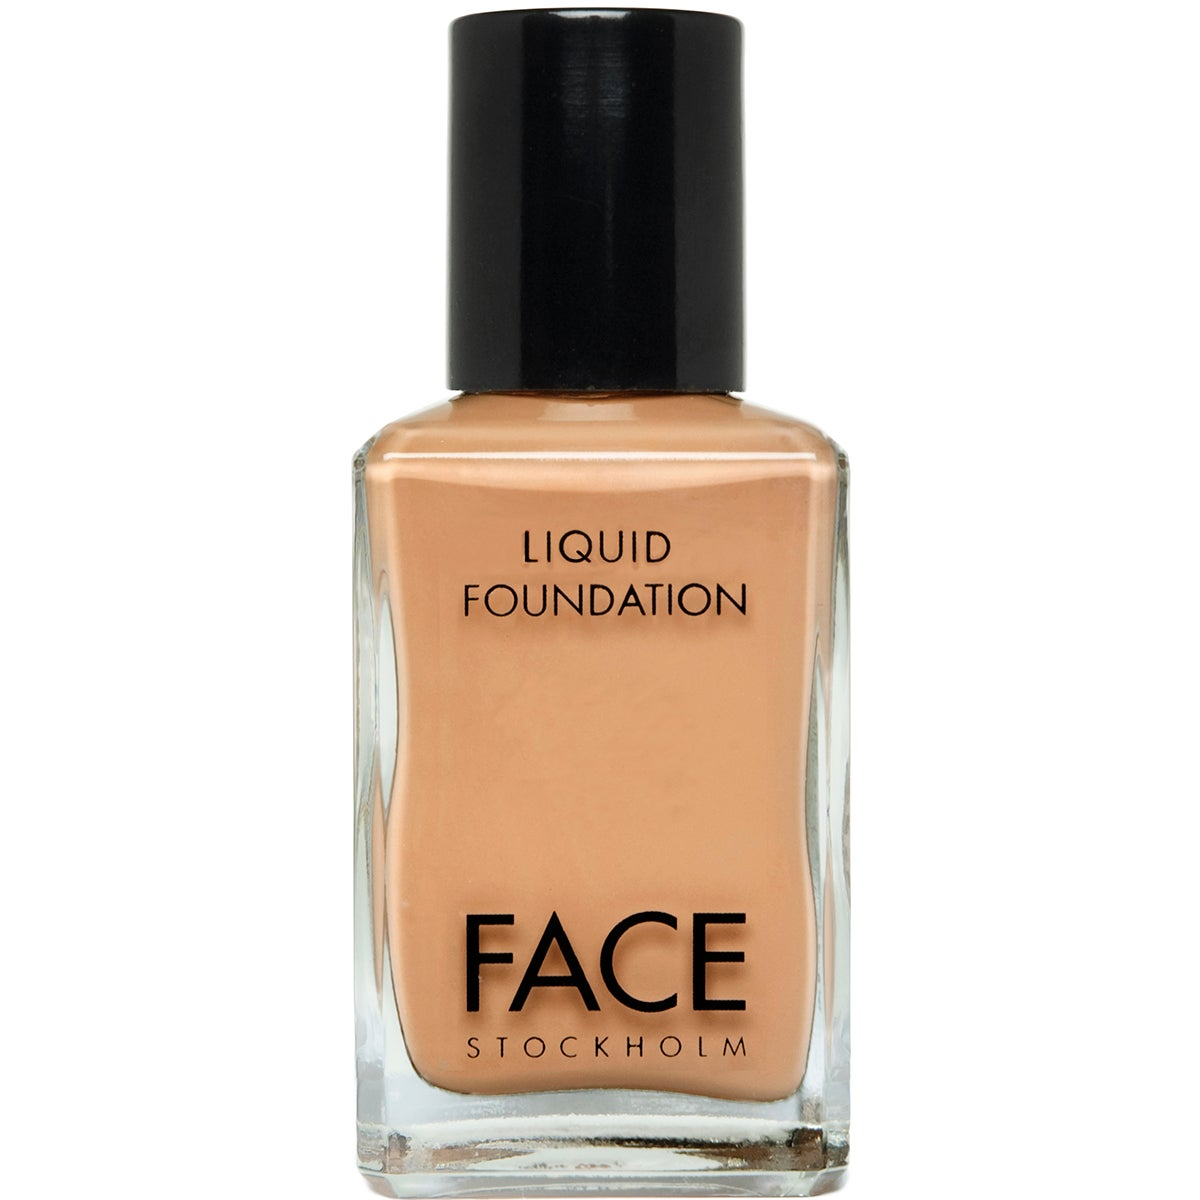 Liquid Foundation 29 ml FACE Stockholm Foundation